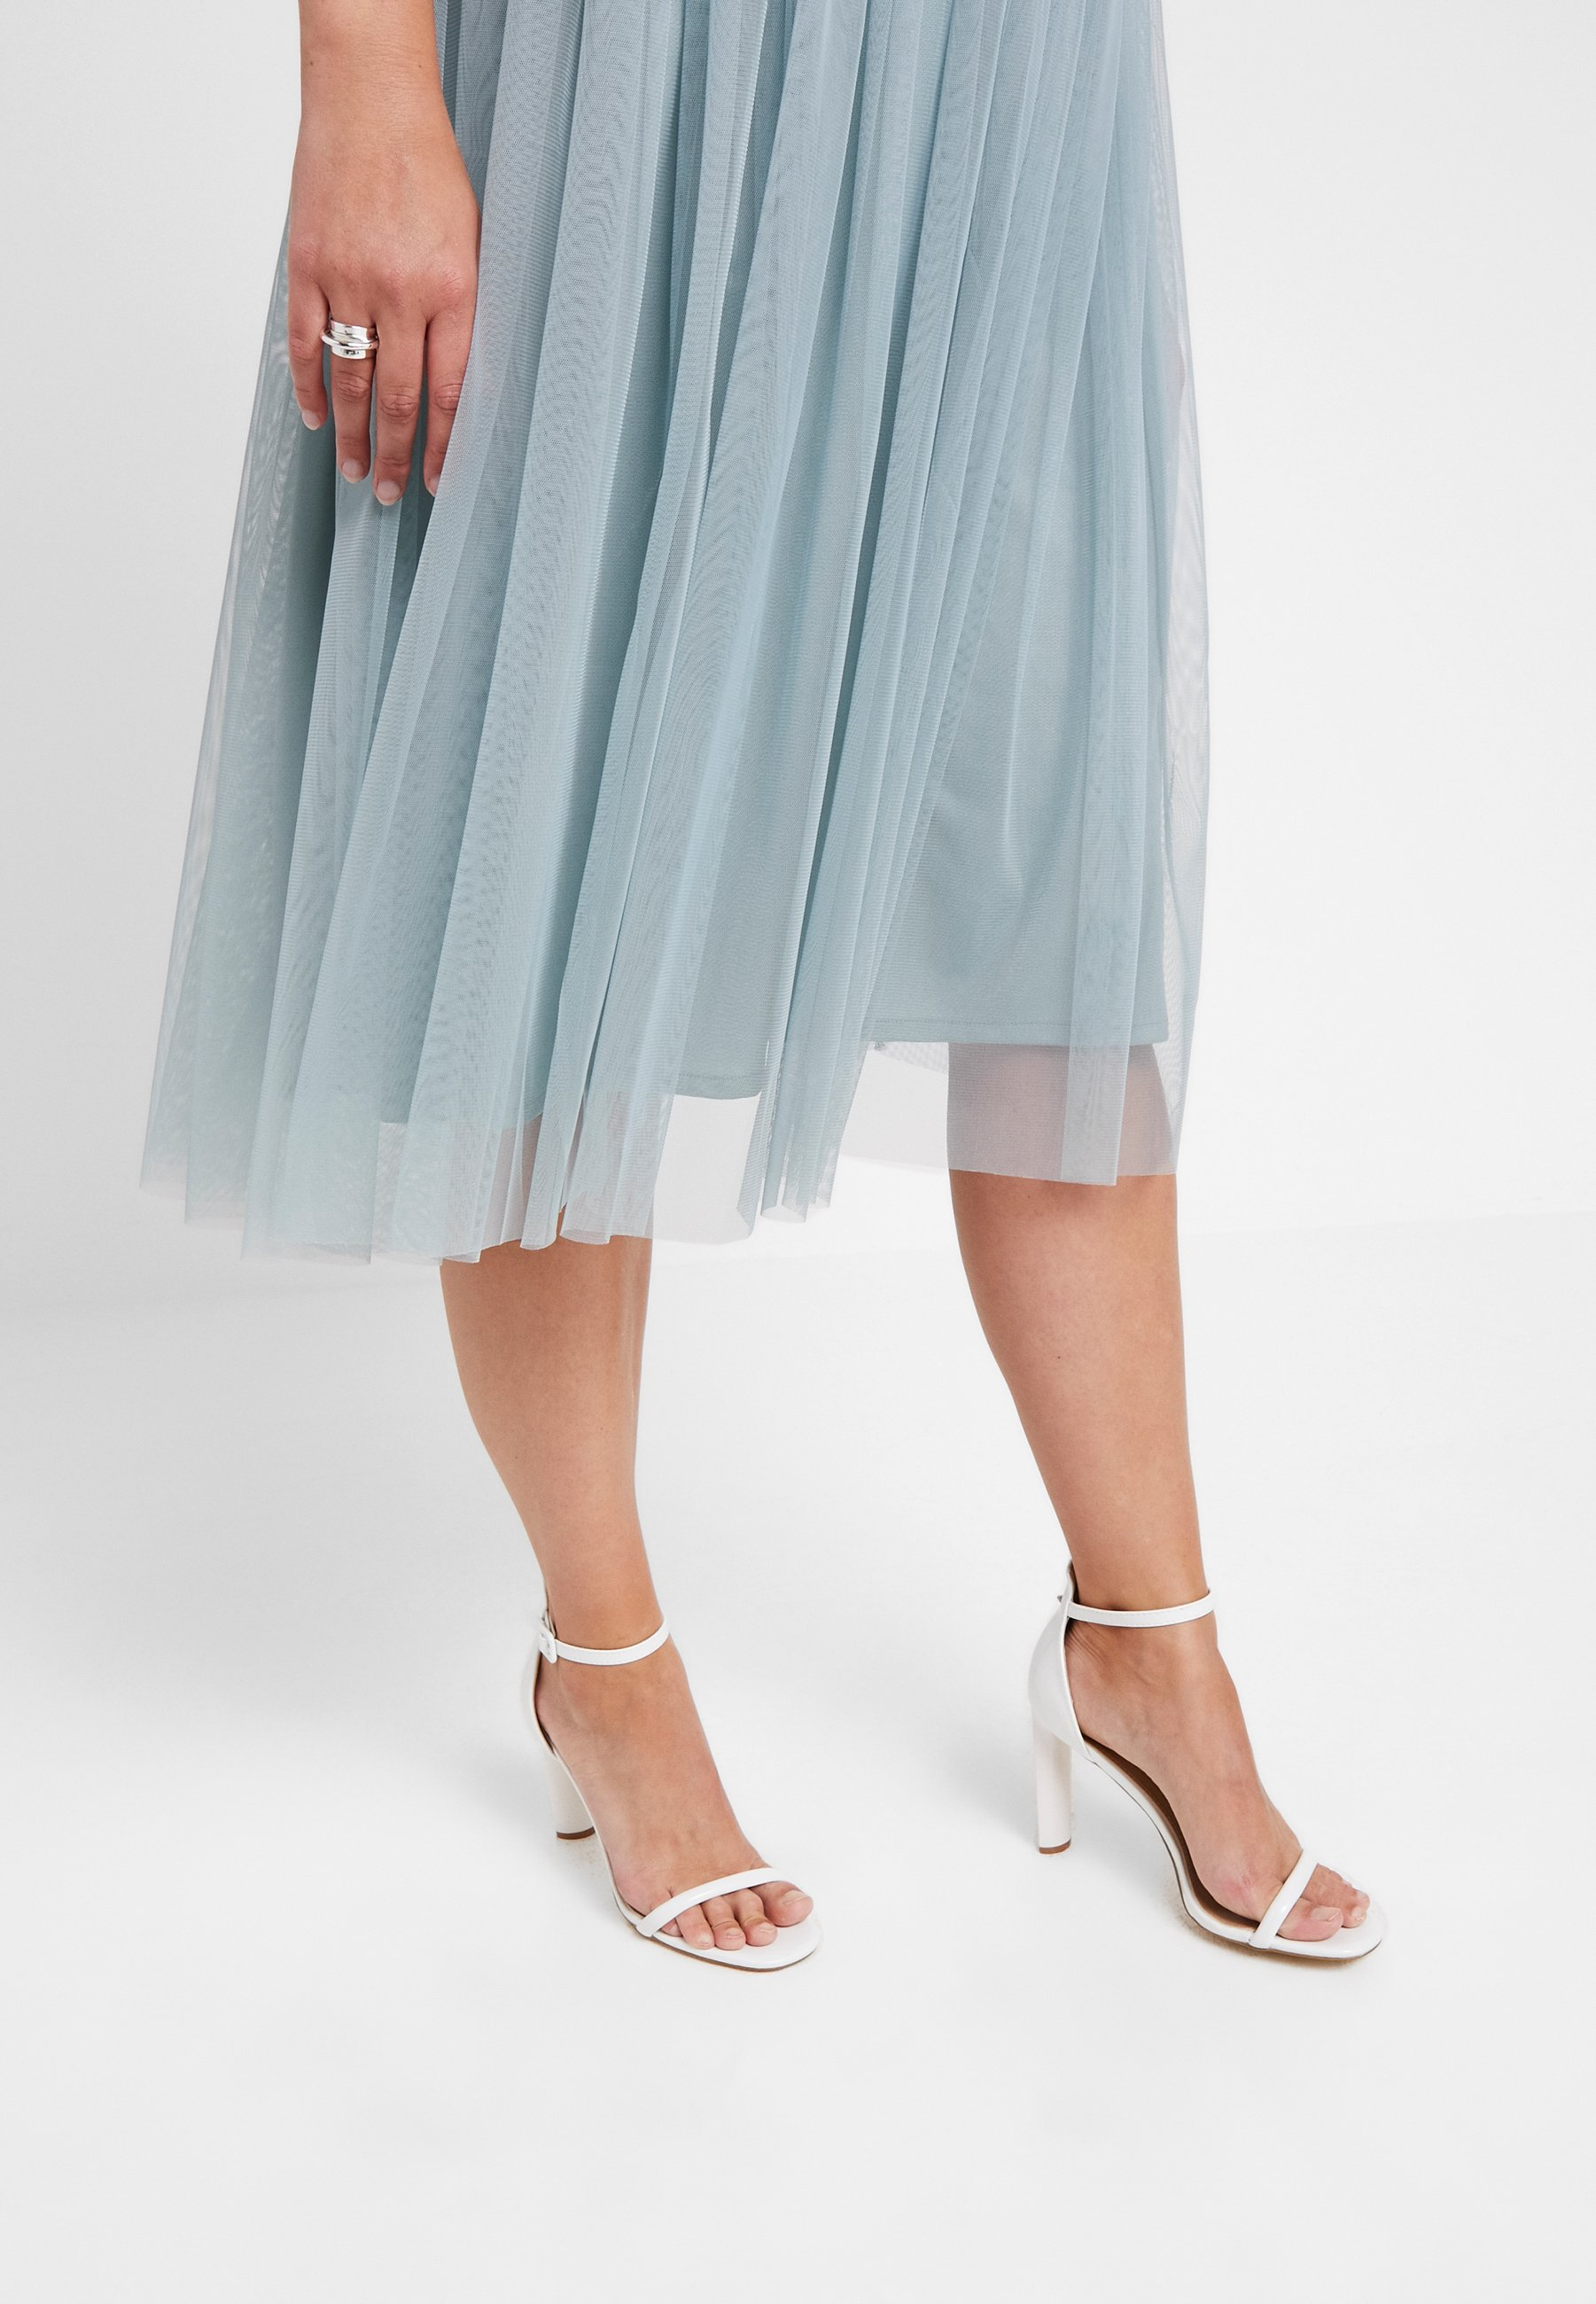 Lace & Beads Curvy VAL SKIRT - Gonna a campana teal